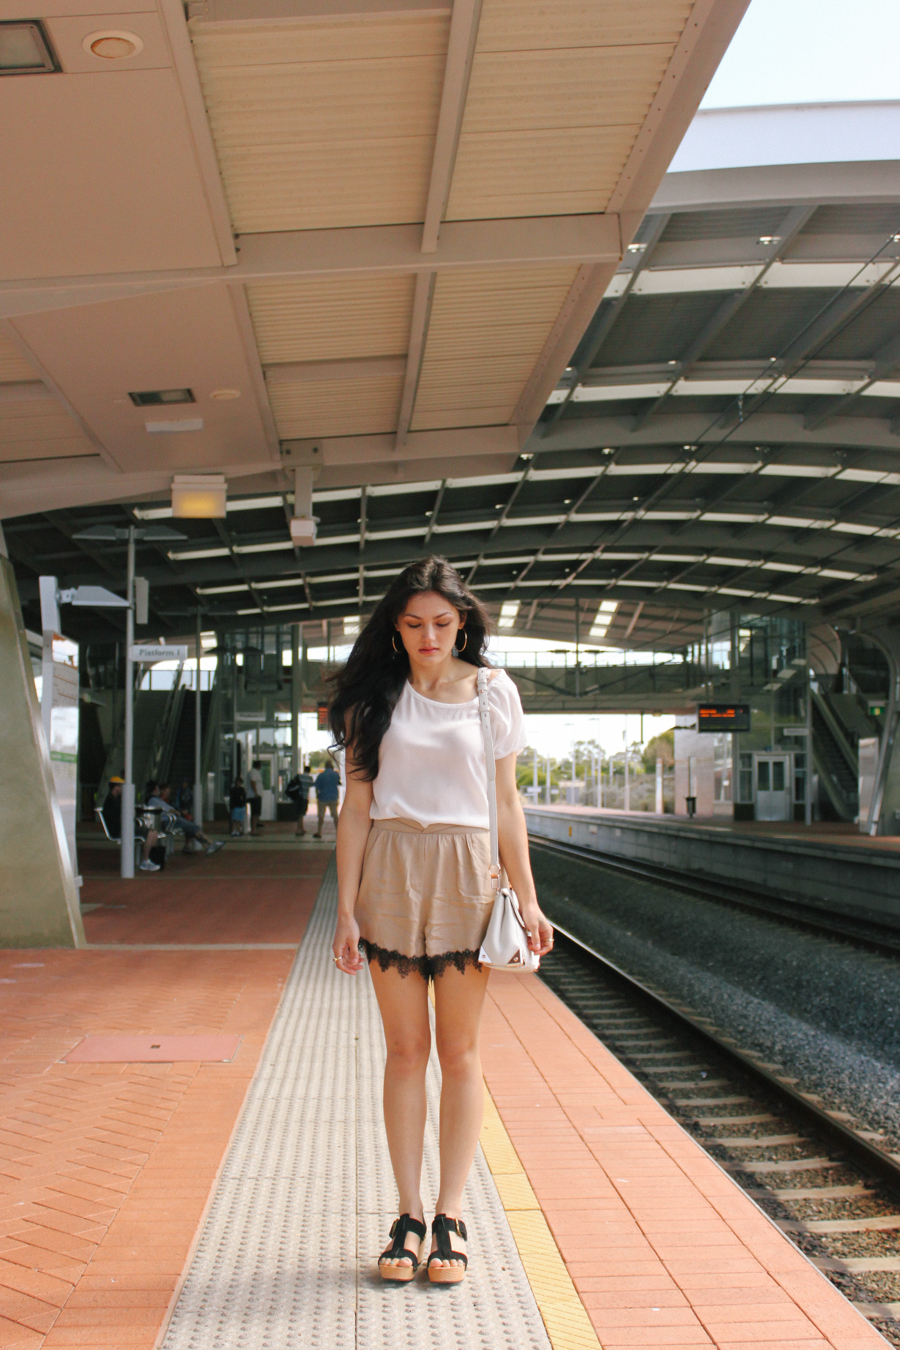 White silk top with lace trim shorts & platform sandals.